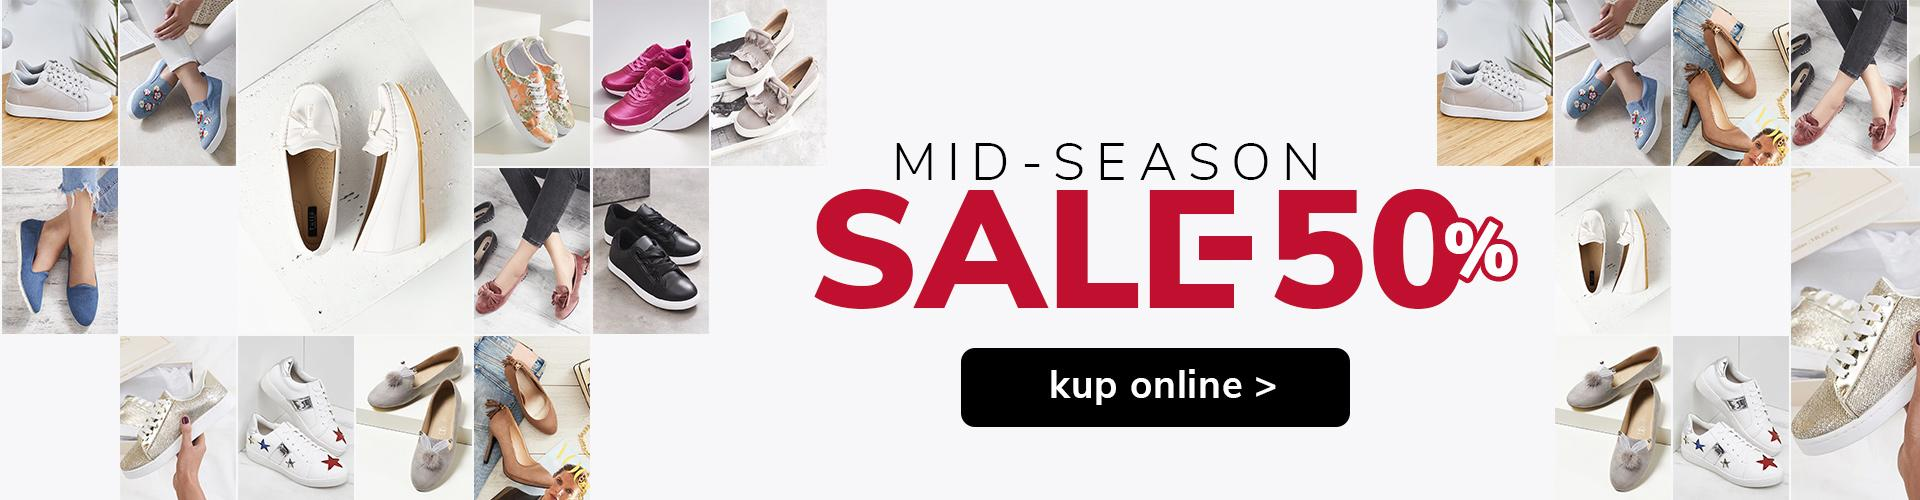 MID-SEASON SALE - 50%